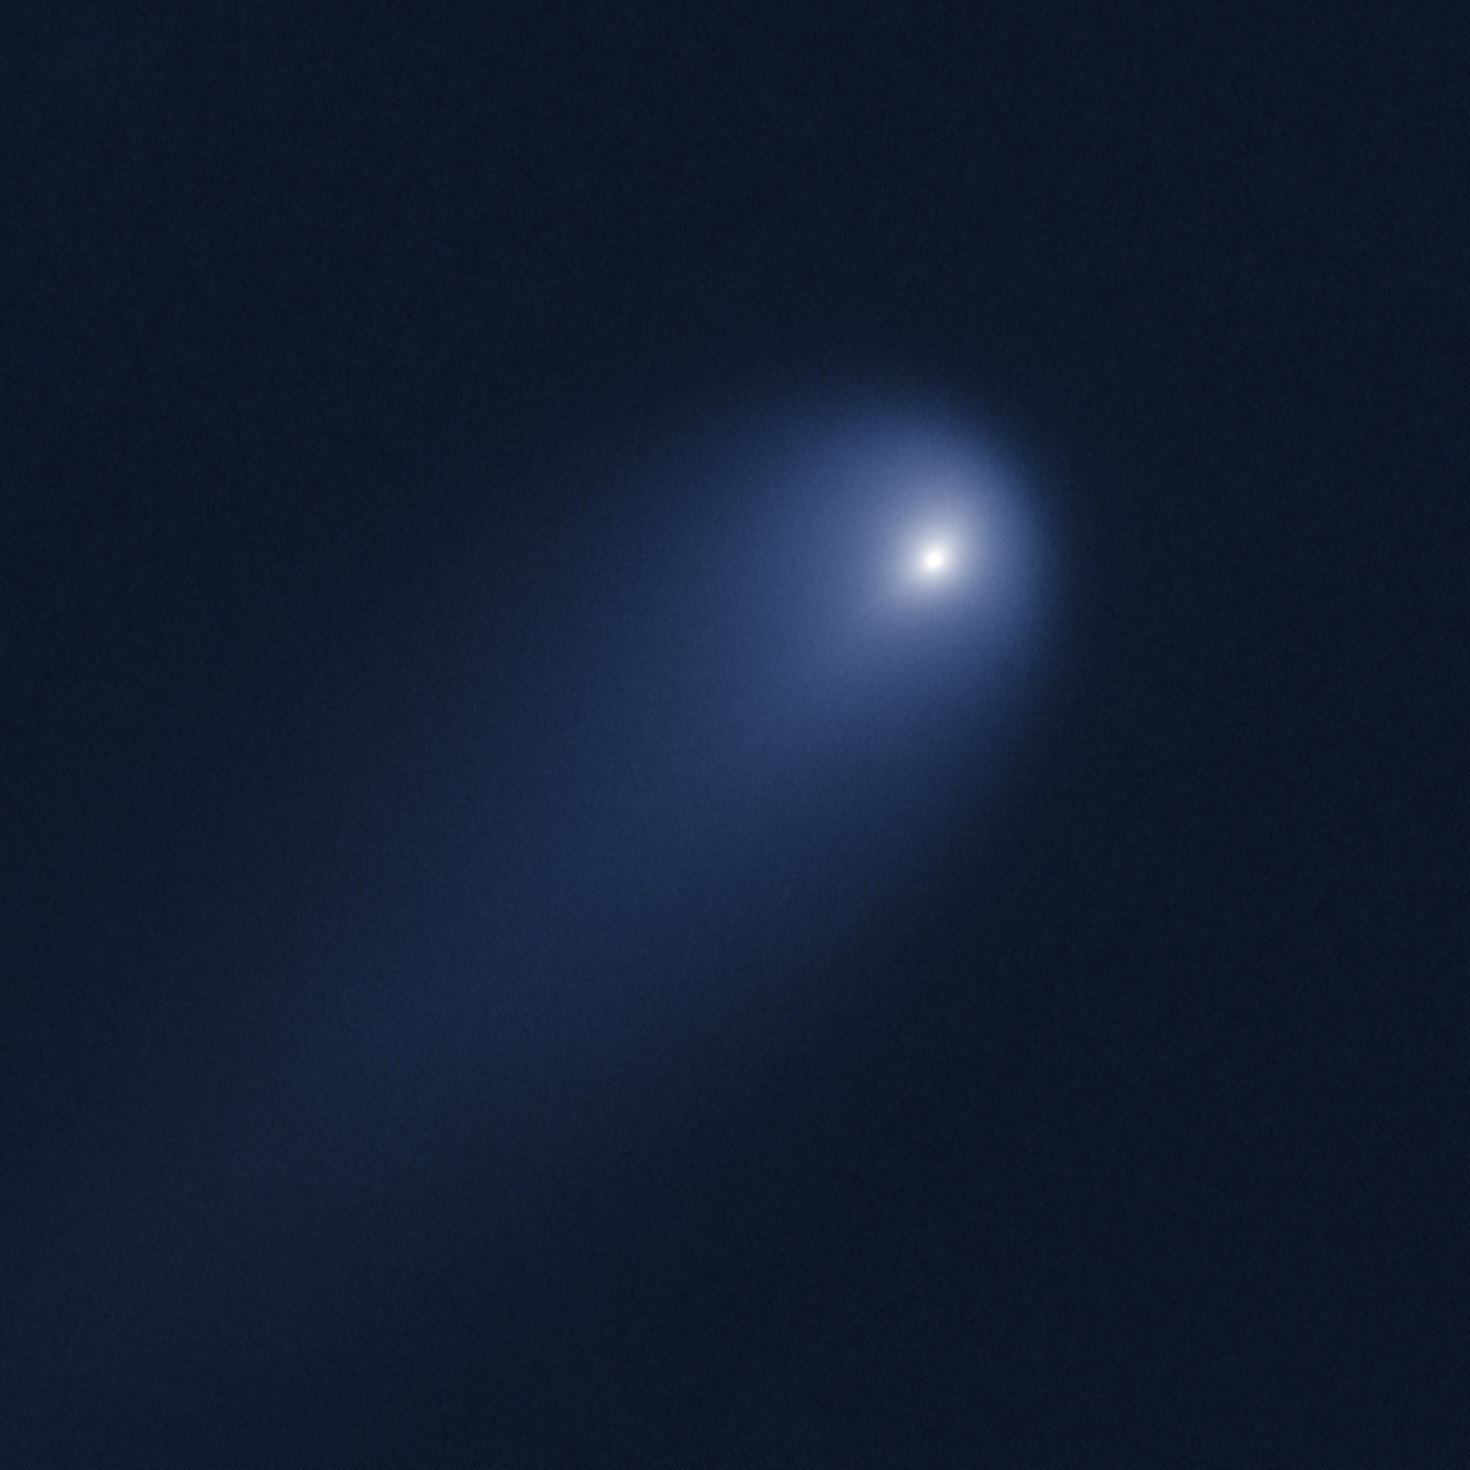 Comet ISON Photo by Hubble Space Telescope